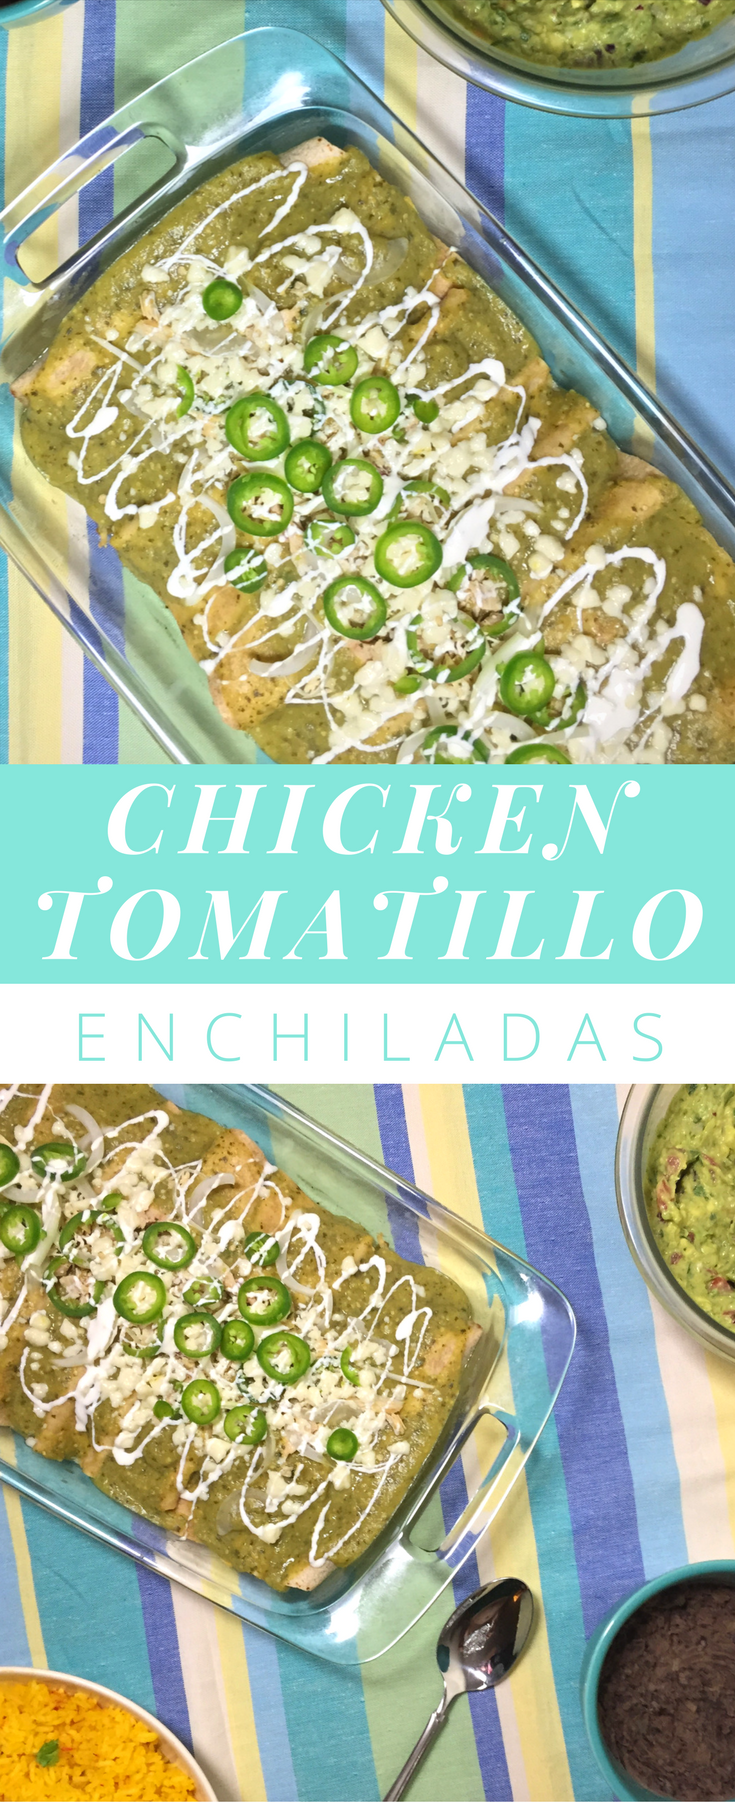 chicken-tomatillo-enchiladas